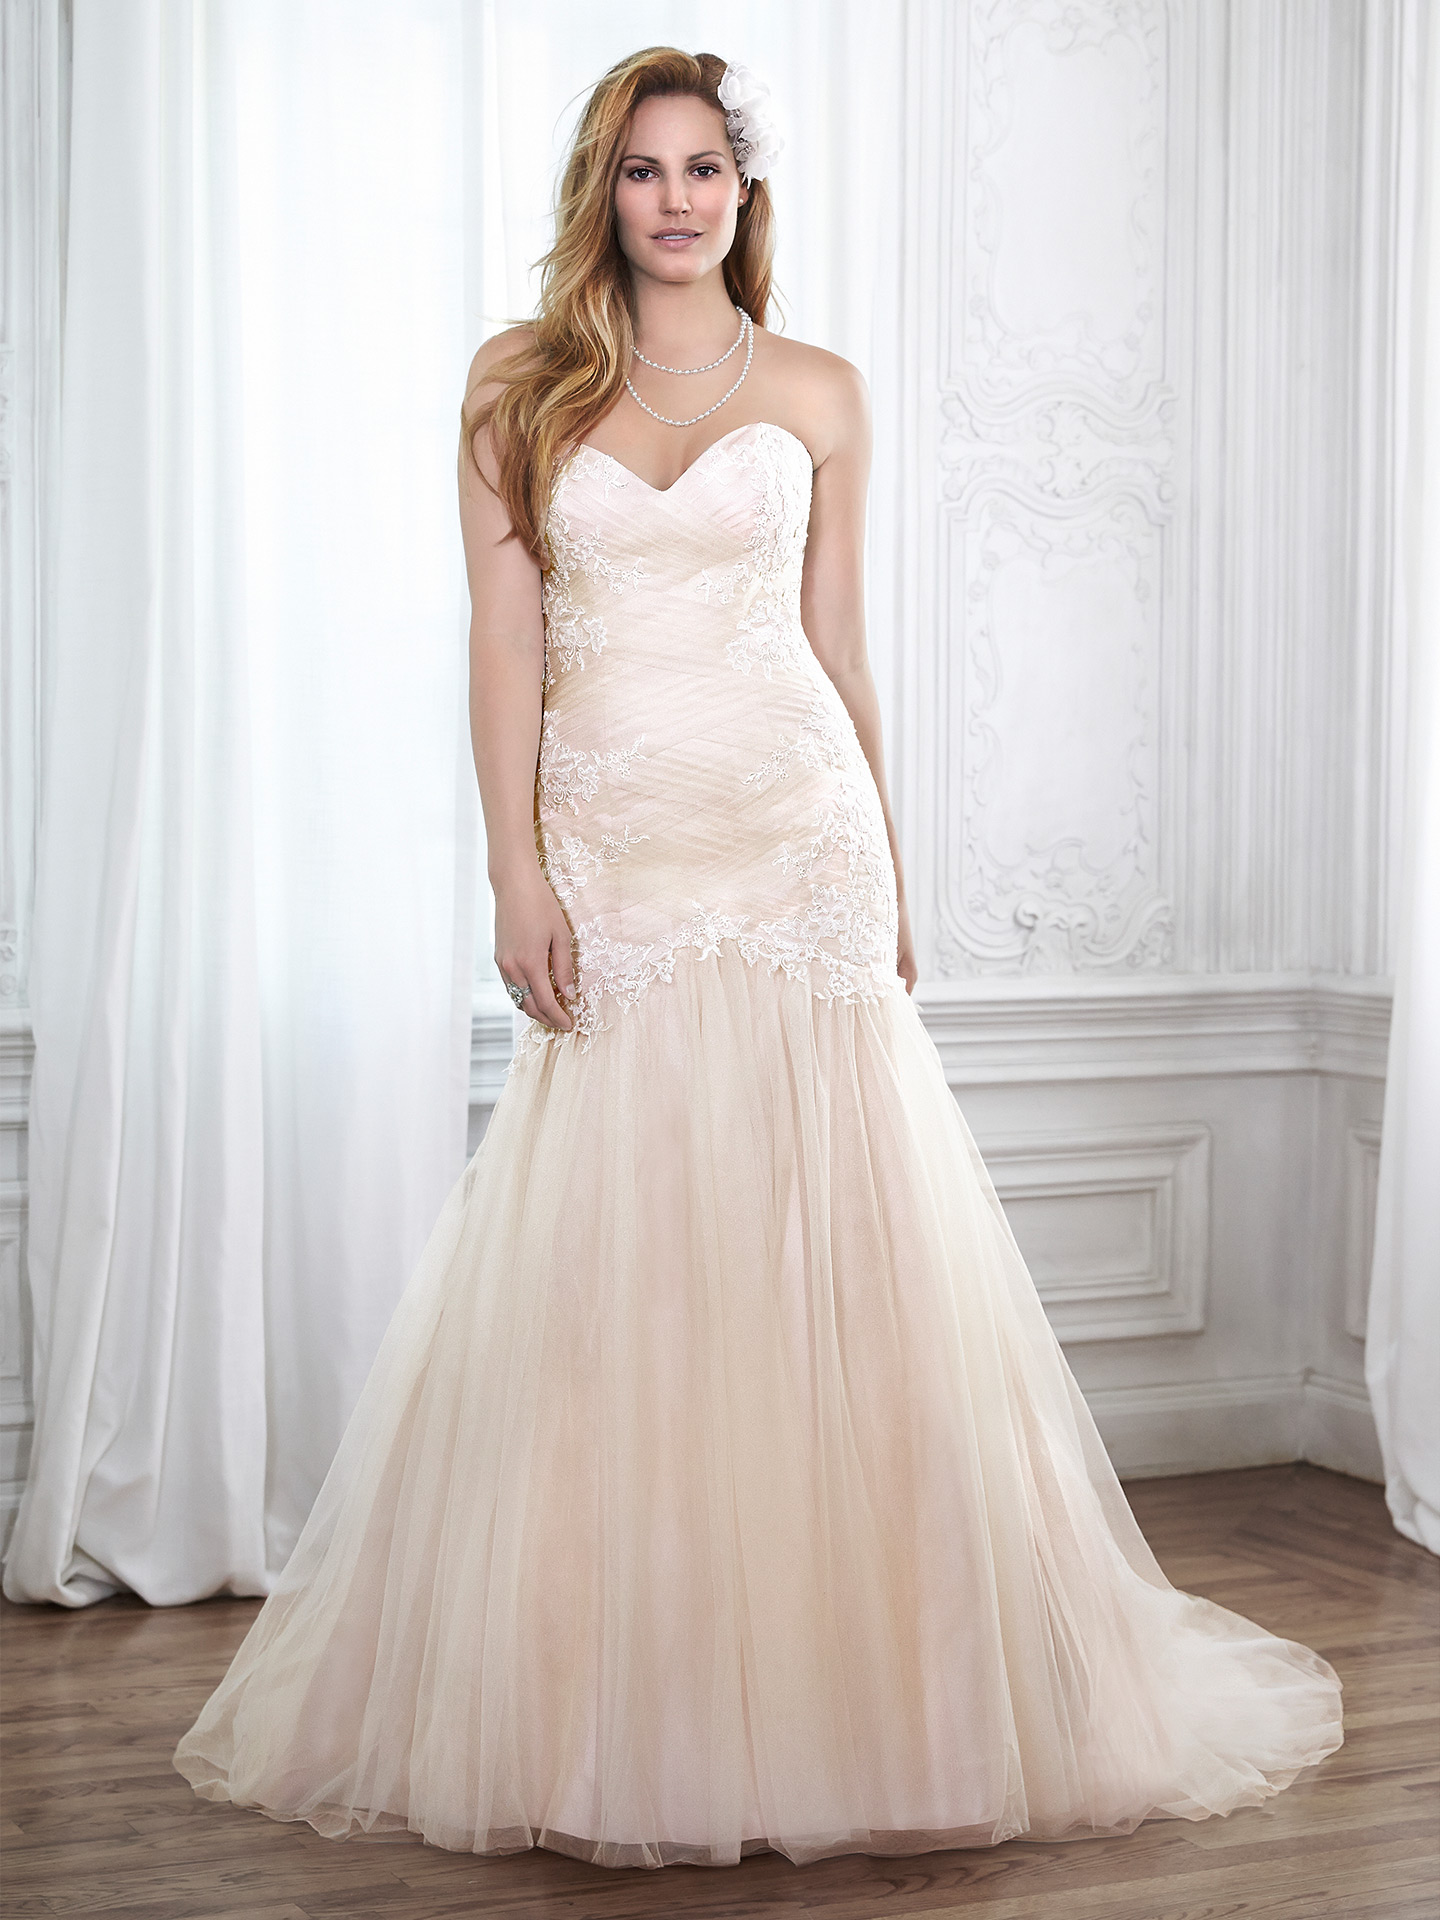 Blush wedding dress by Maggie Sottero. Colorful Wedding Dresses For The Bold Bride